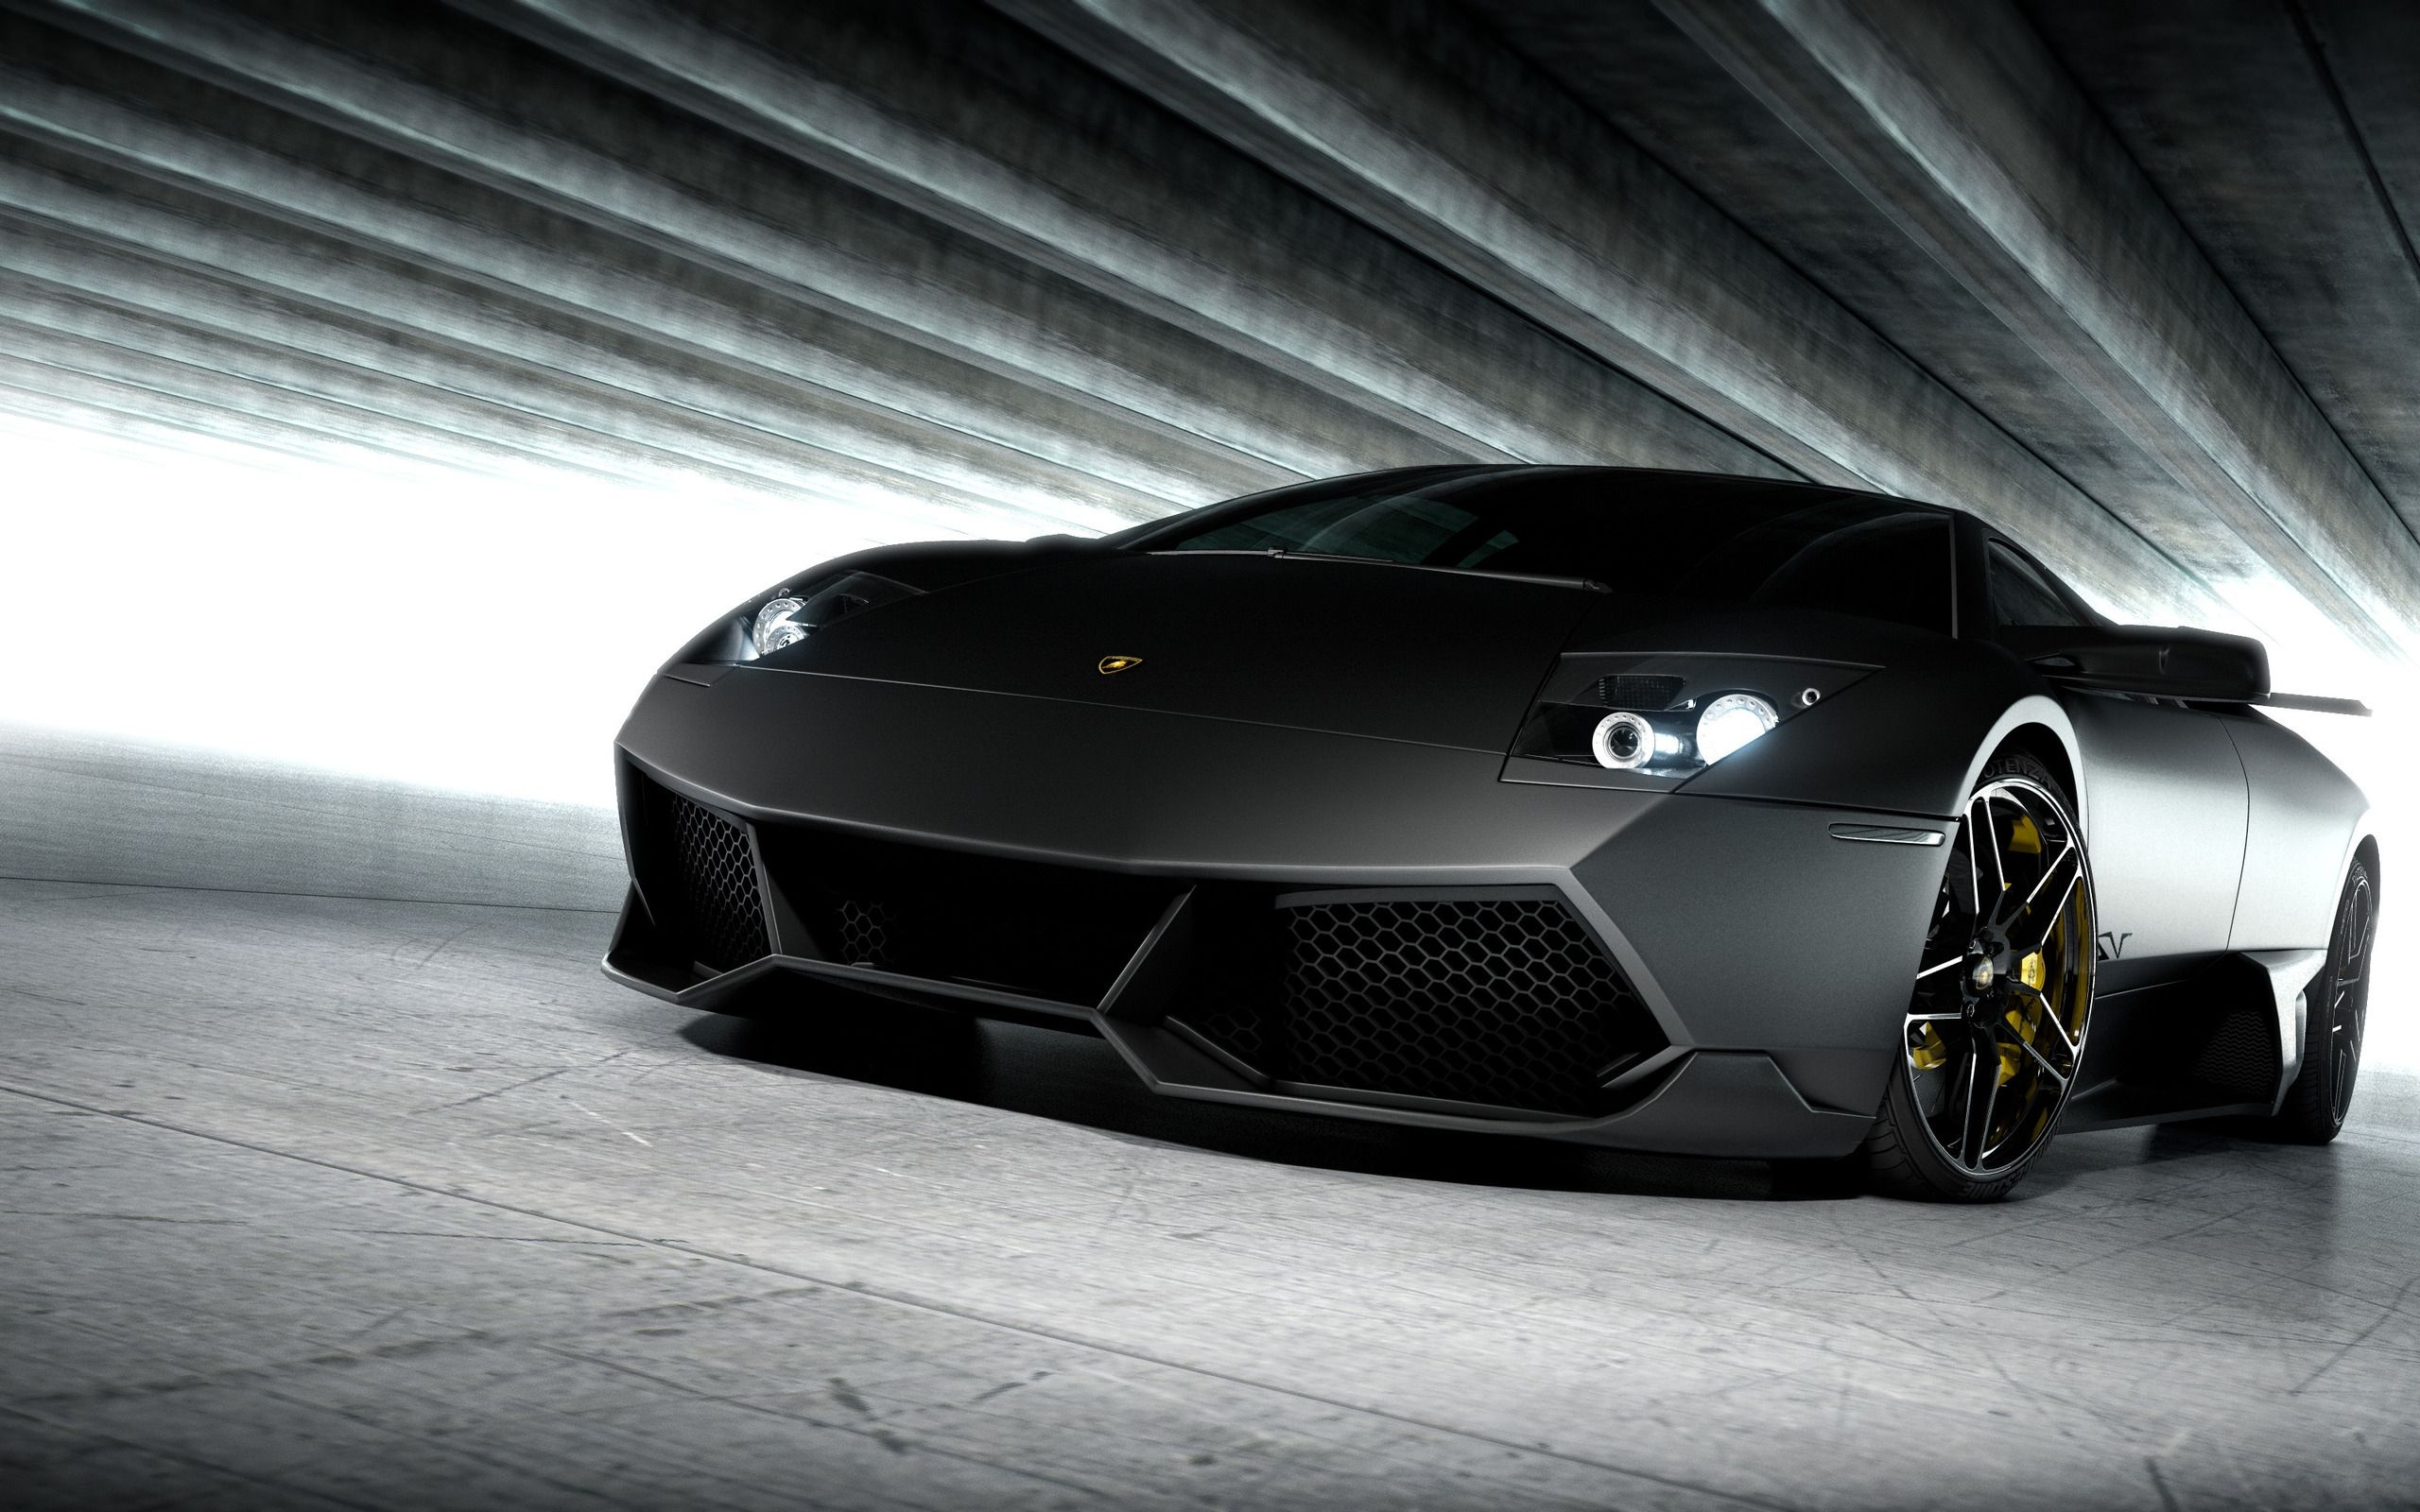 Fast Car Wallpaper Download Free Fast Car Wallpaper In 2880x1800 2560x1600 1920x1200 And In All Resolution To Decorate Your Pc Laptop Or With Images Cool Sports Cars